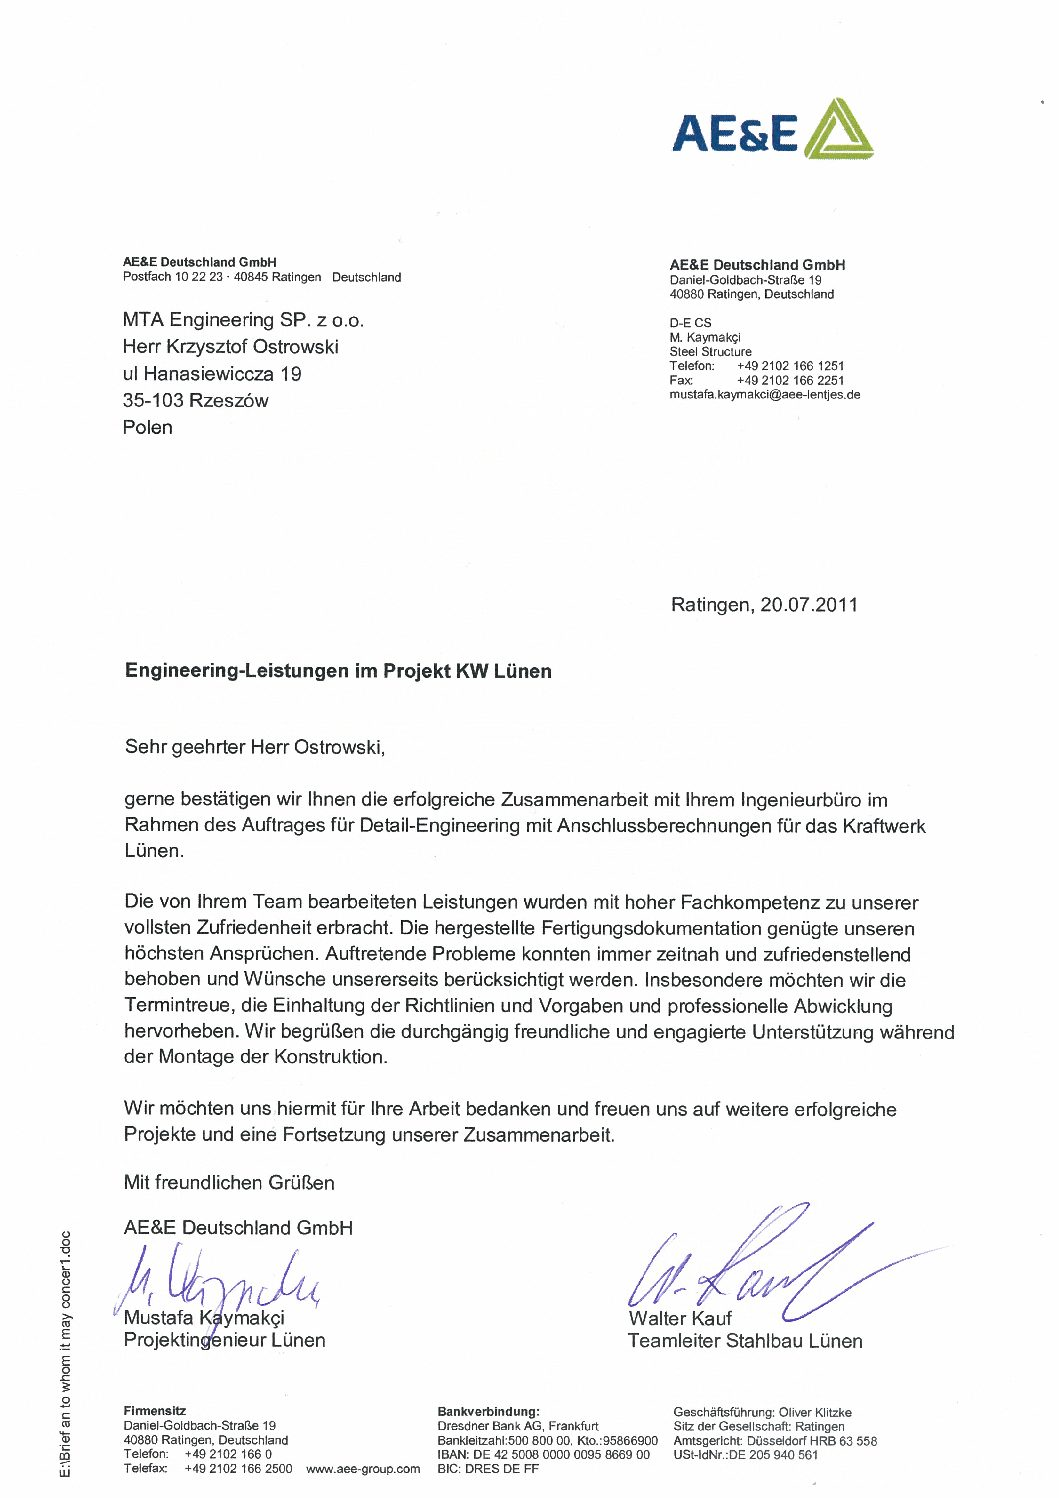 Reference letters - Biuro projektowe MTA Engineering Sp. z o.o.